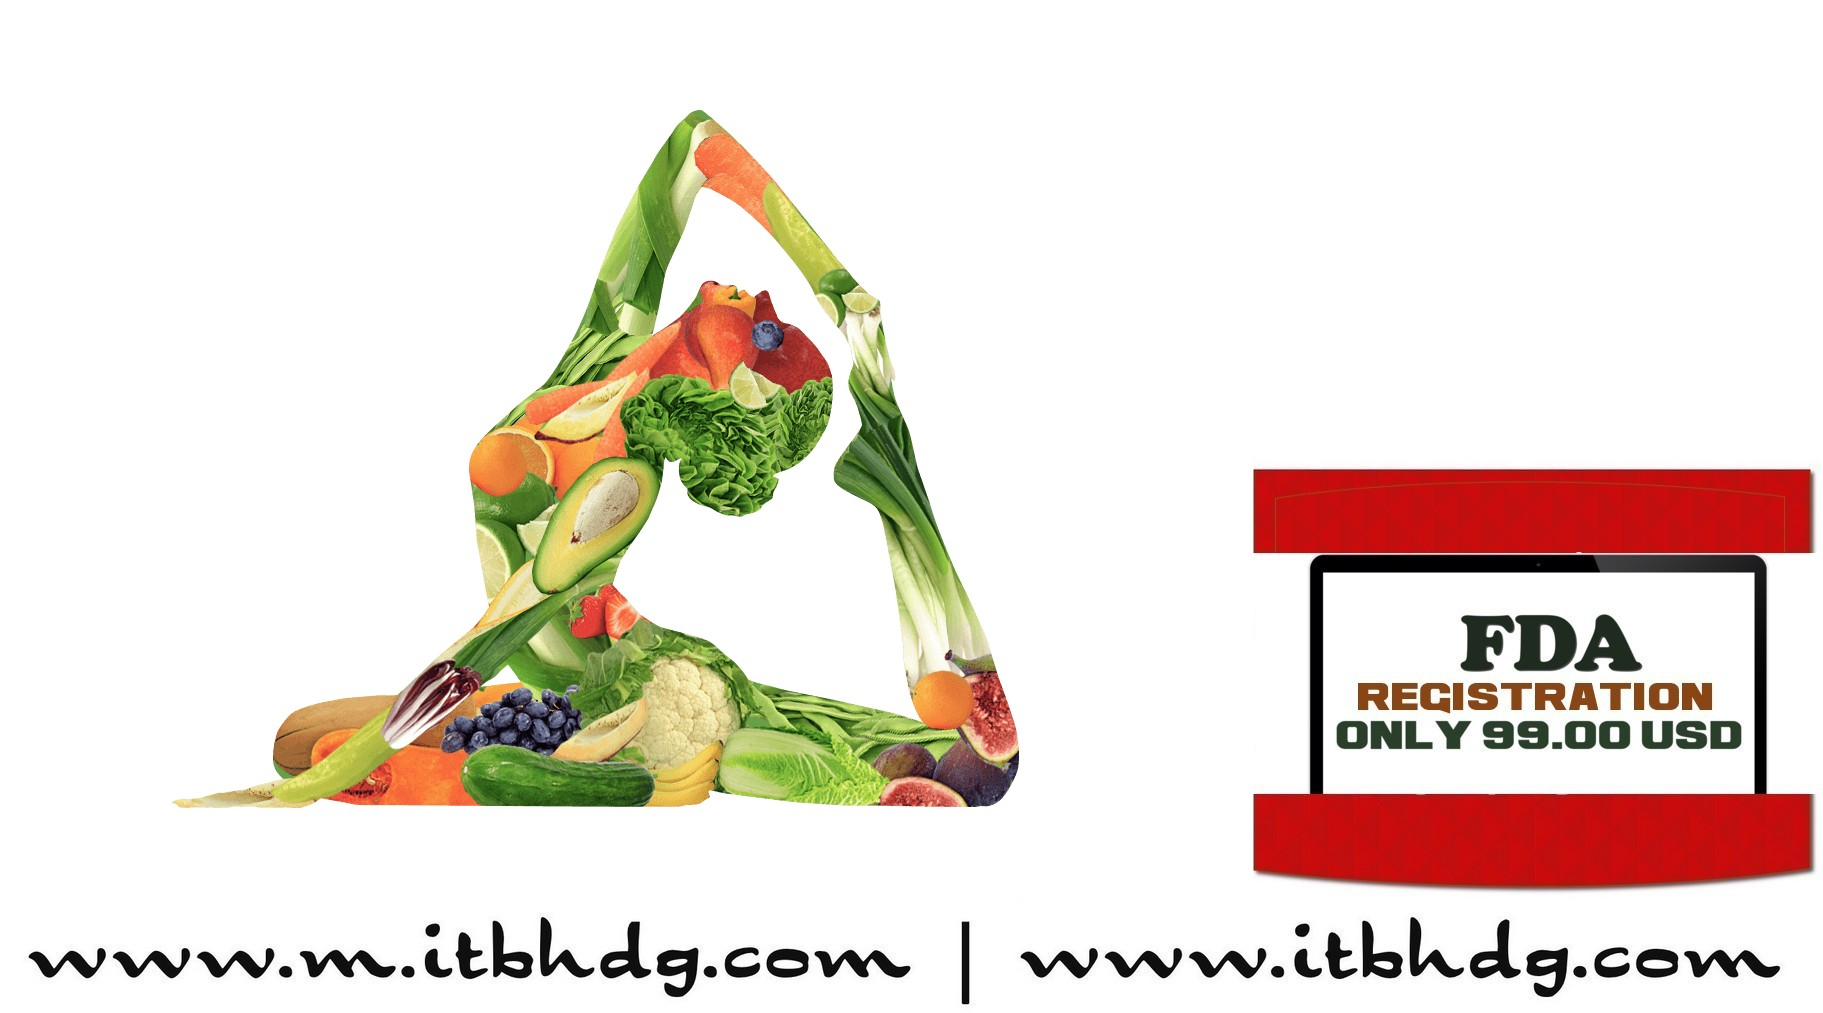 Thanksgiving, Black Friday, Small Biz Saturday and Cyber Monday Sales start today | Save up to 75% now | www.m.itbhdg.com | www.itbhdg.com | http://www.m.itbhdg.com/fda-registration-specials.html